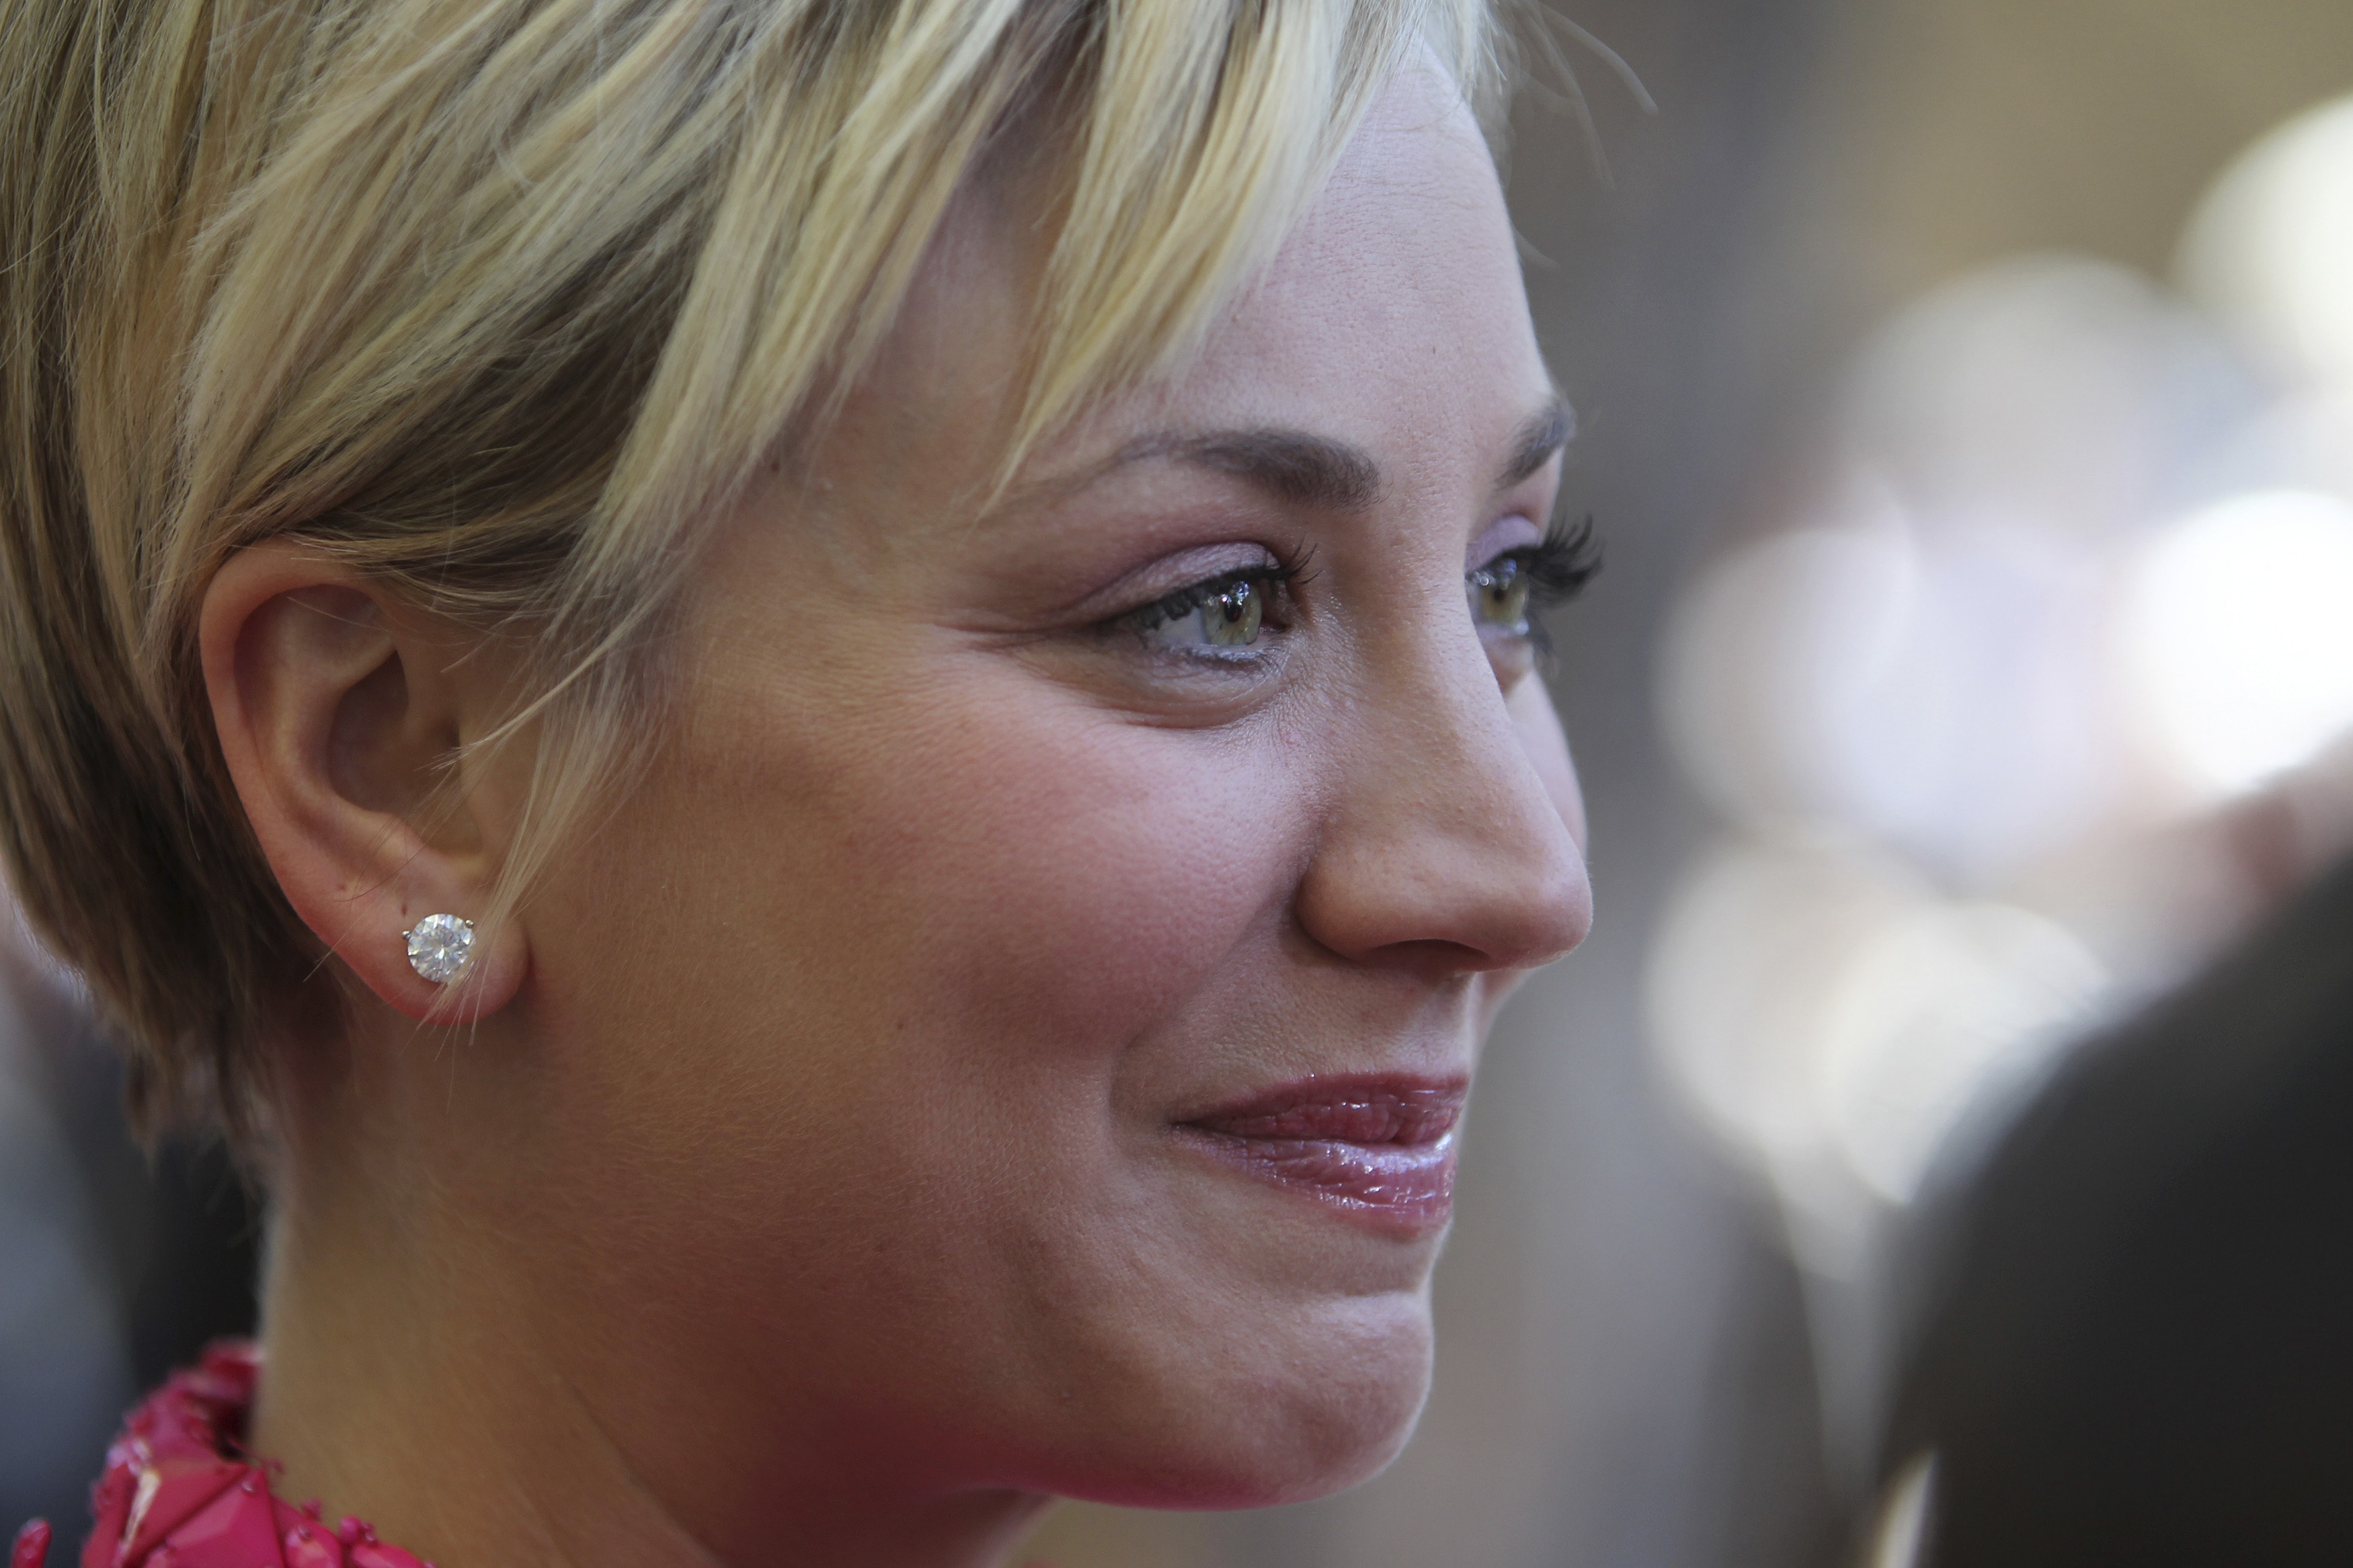 Kaley Cuoco Widescreen for desktop